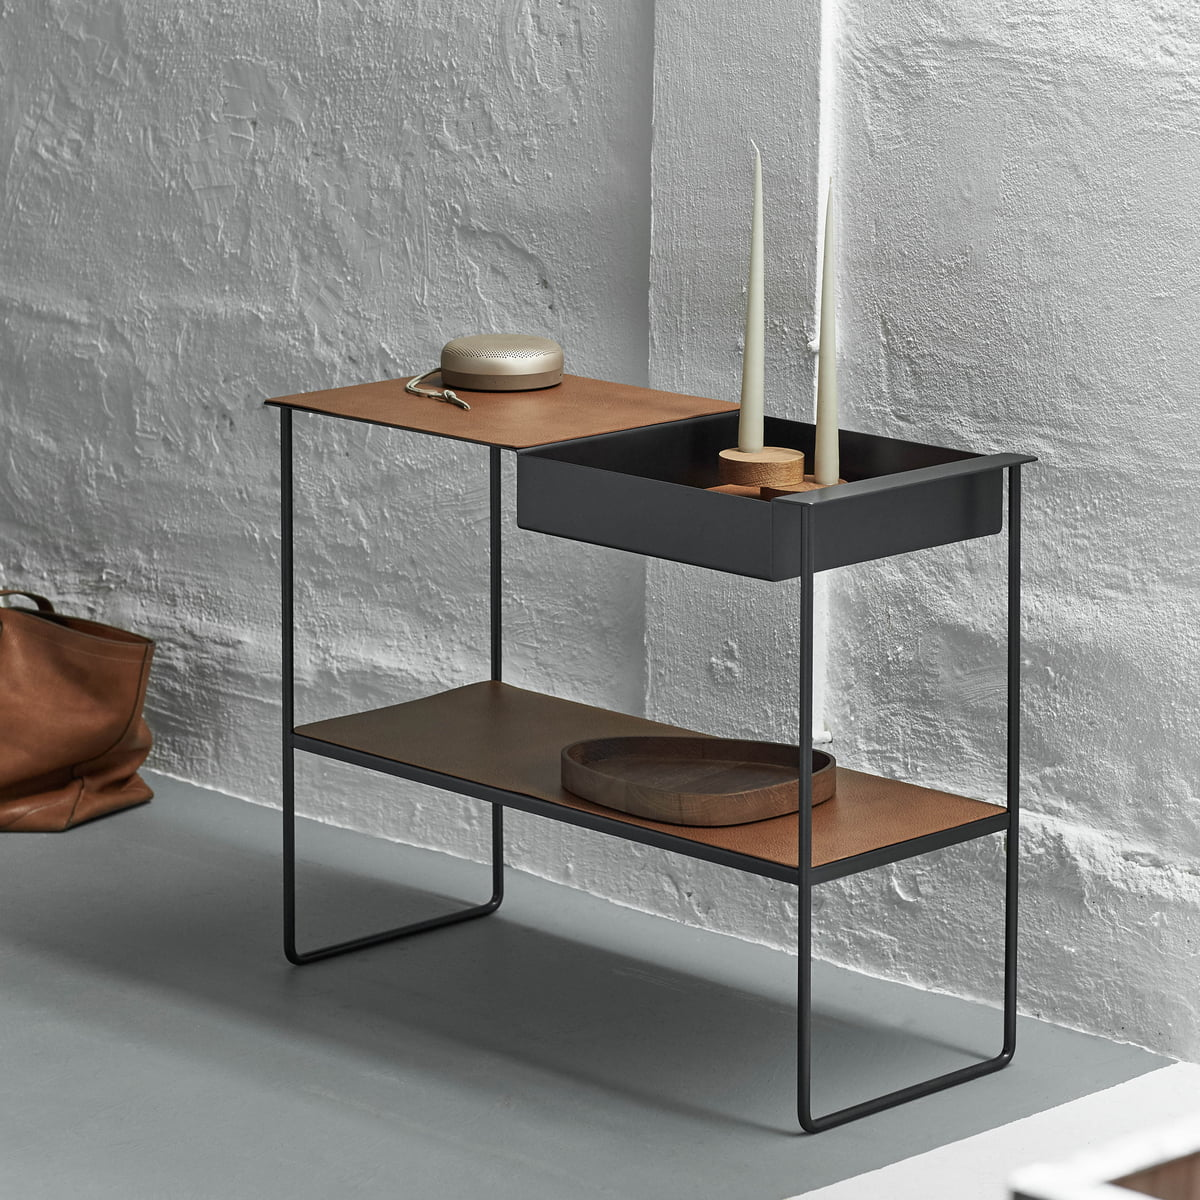 Lind dna - console table with tray, alu black / bull black